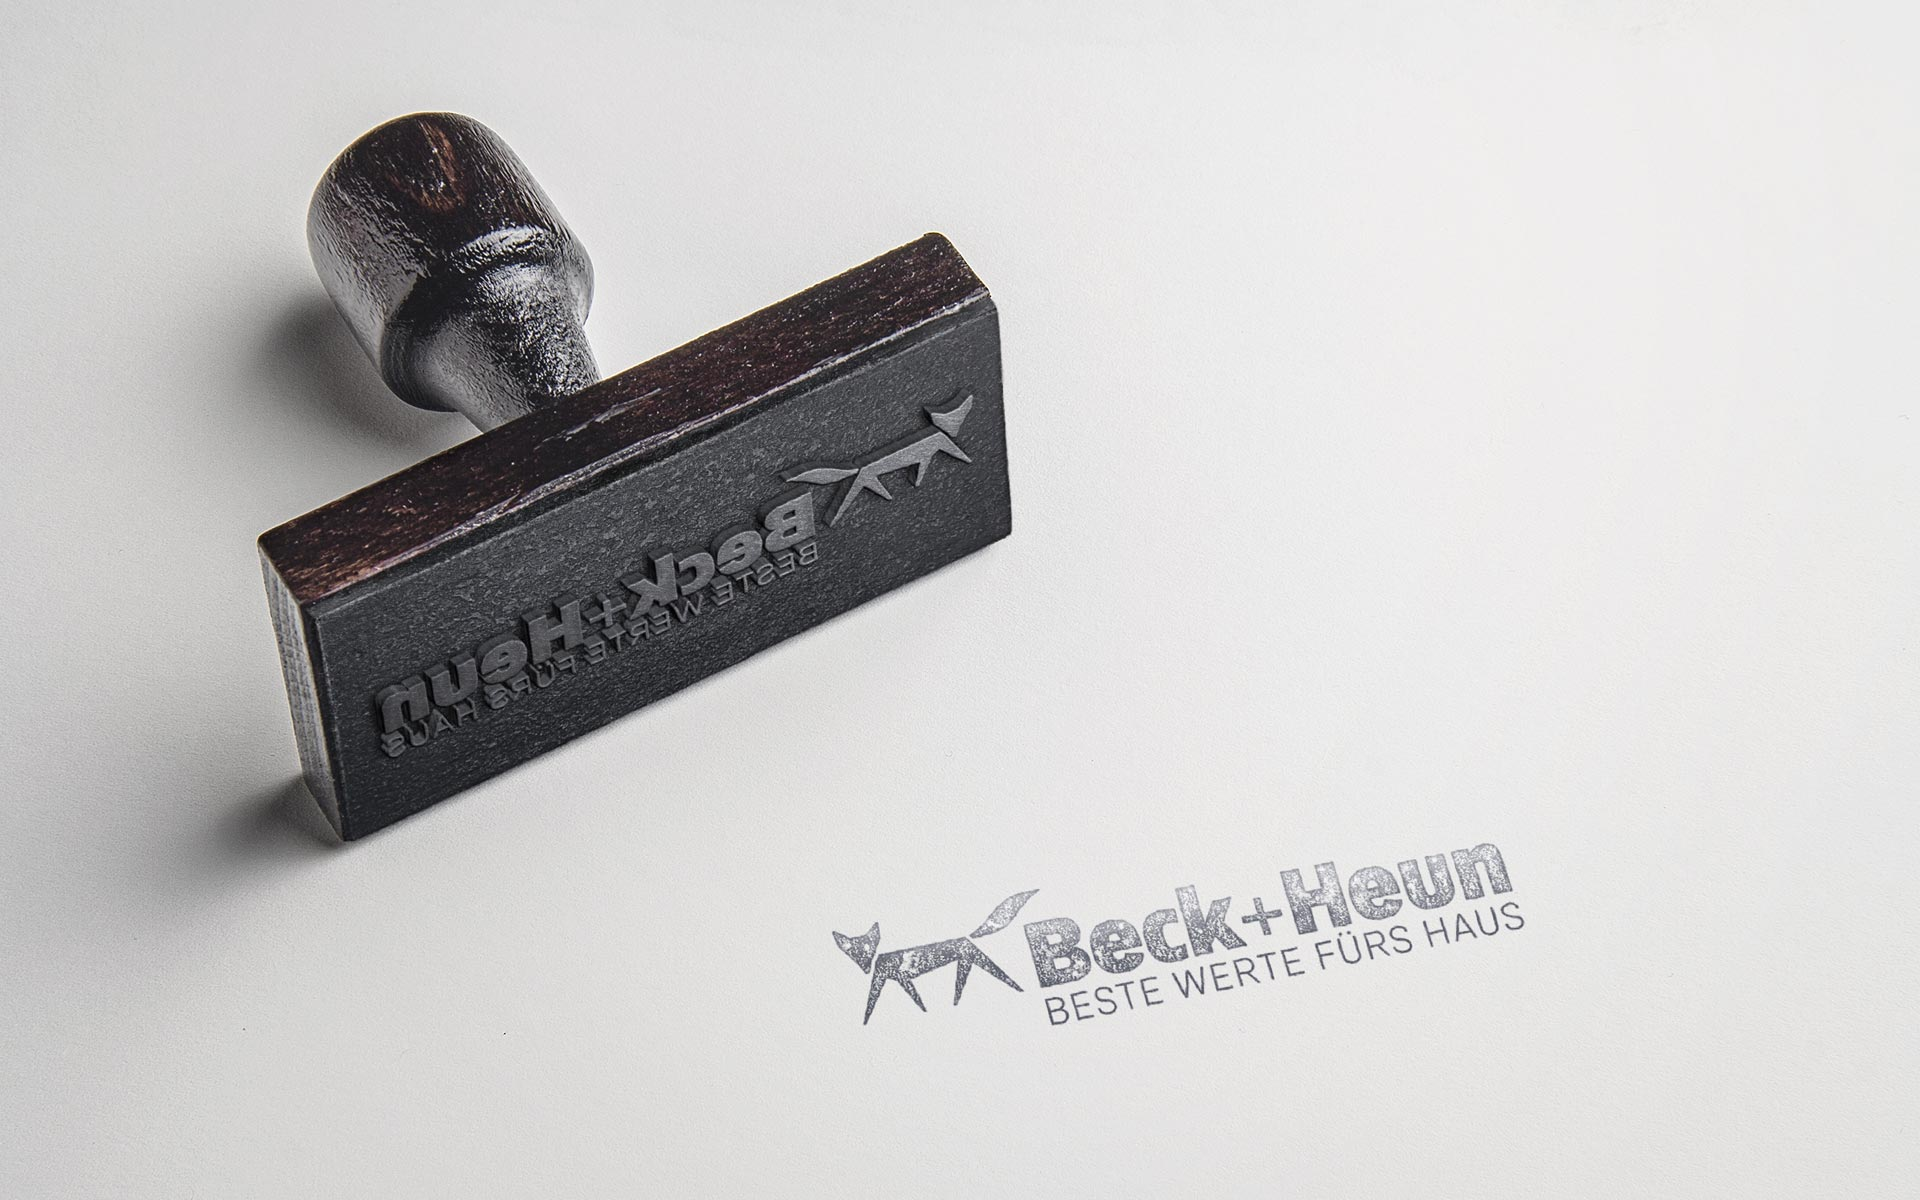 Beck+Heun Corporate Design, Markenkommunikation, Stationery, Stempel mit Logotype